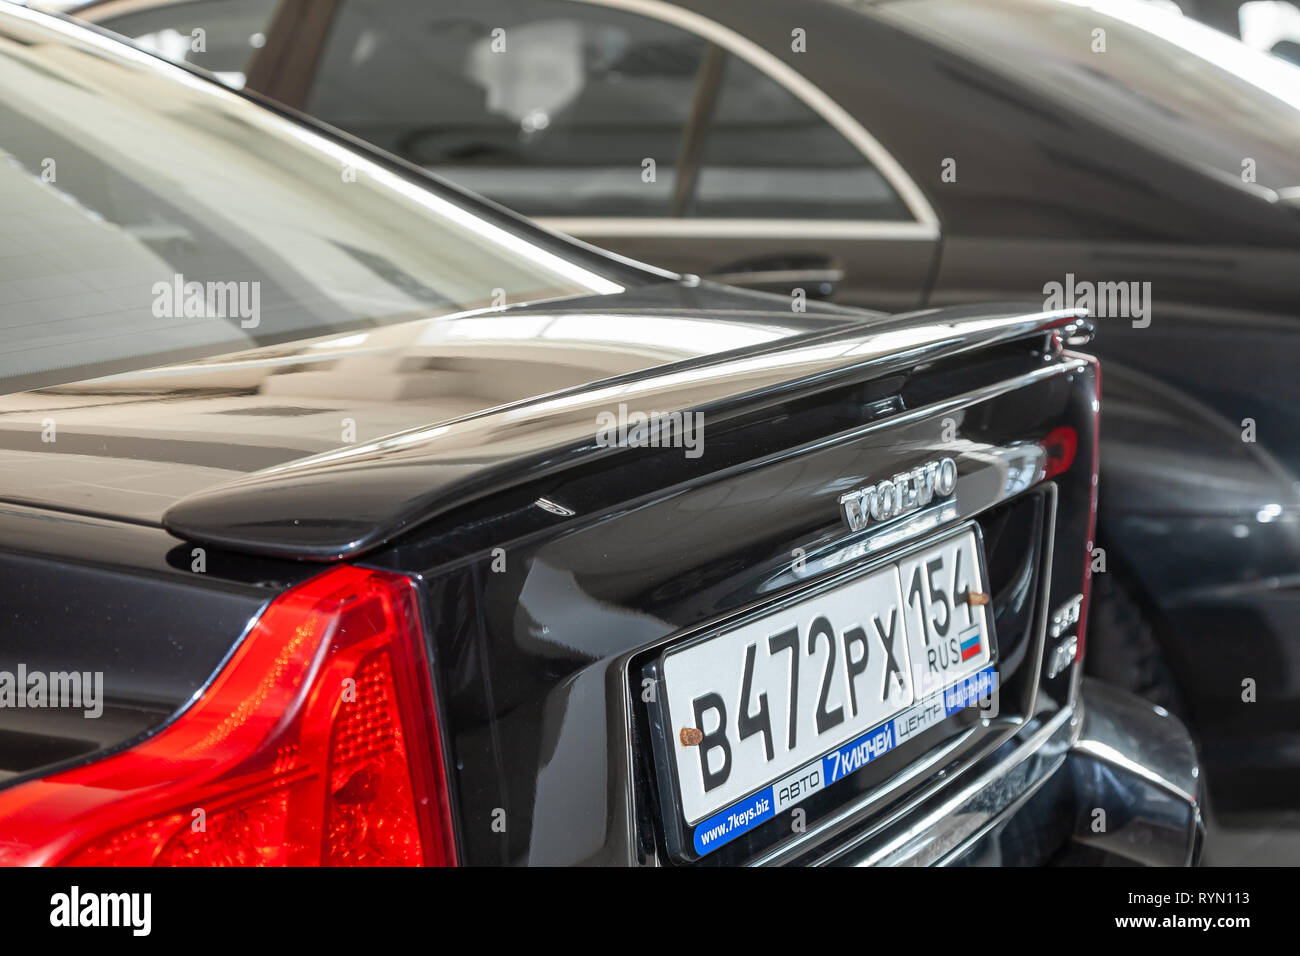 Novosibirsk, Russia - 08.01.18: Rear spoiler on the trunk of black used Volvo S60 car stands in the auto sale after wadhing - Stock Image